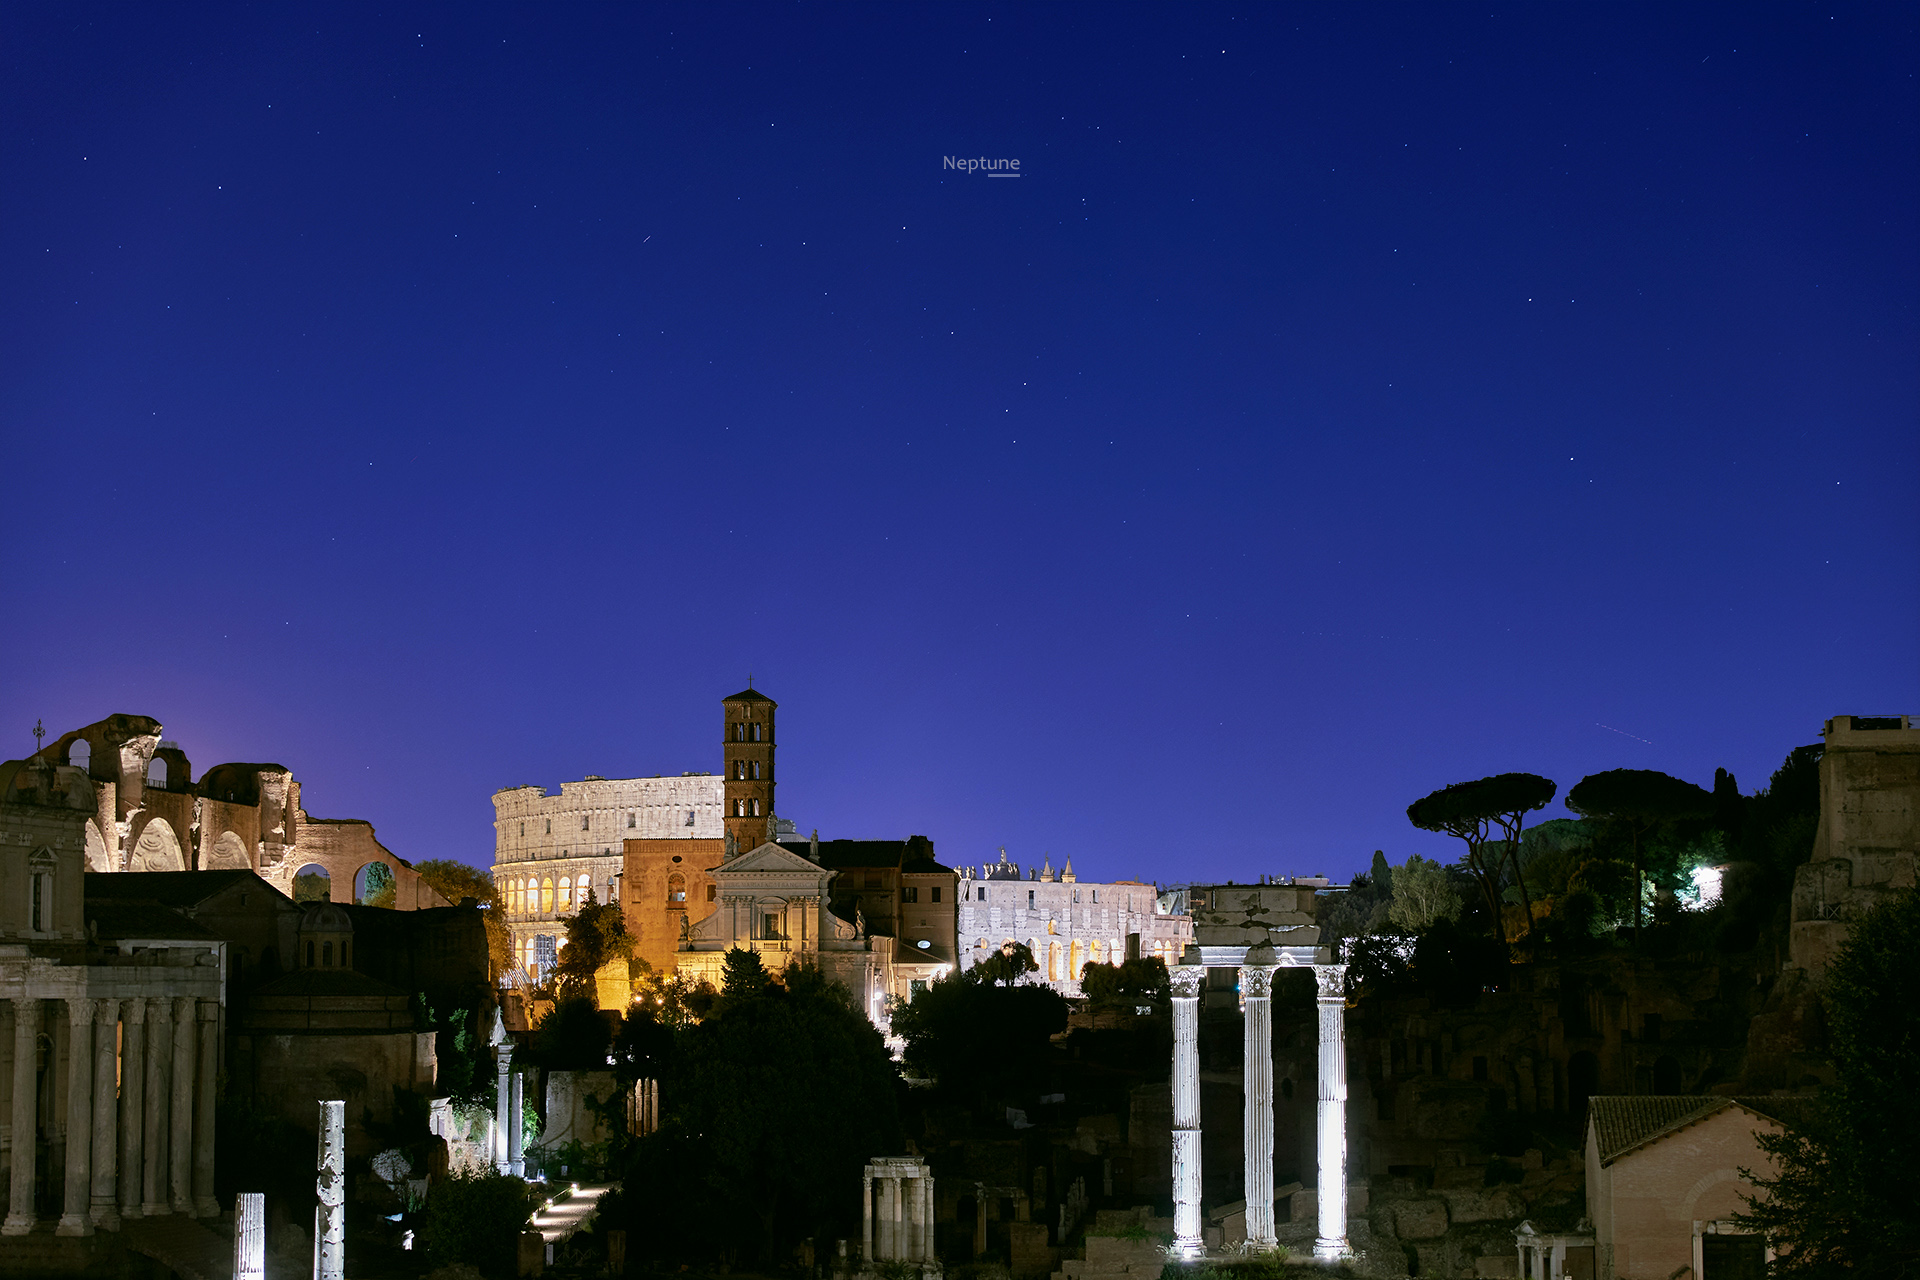 Planet Neptune is visible above the Colosseum and the Roman Forum - 28 Aug. 2018